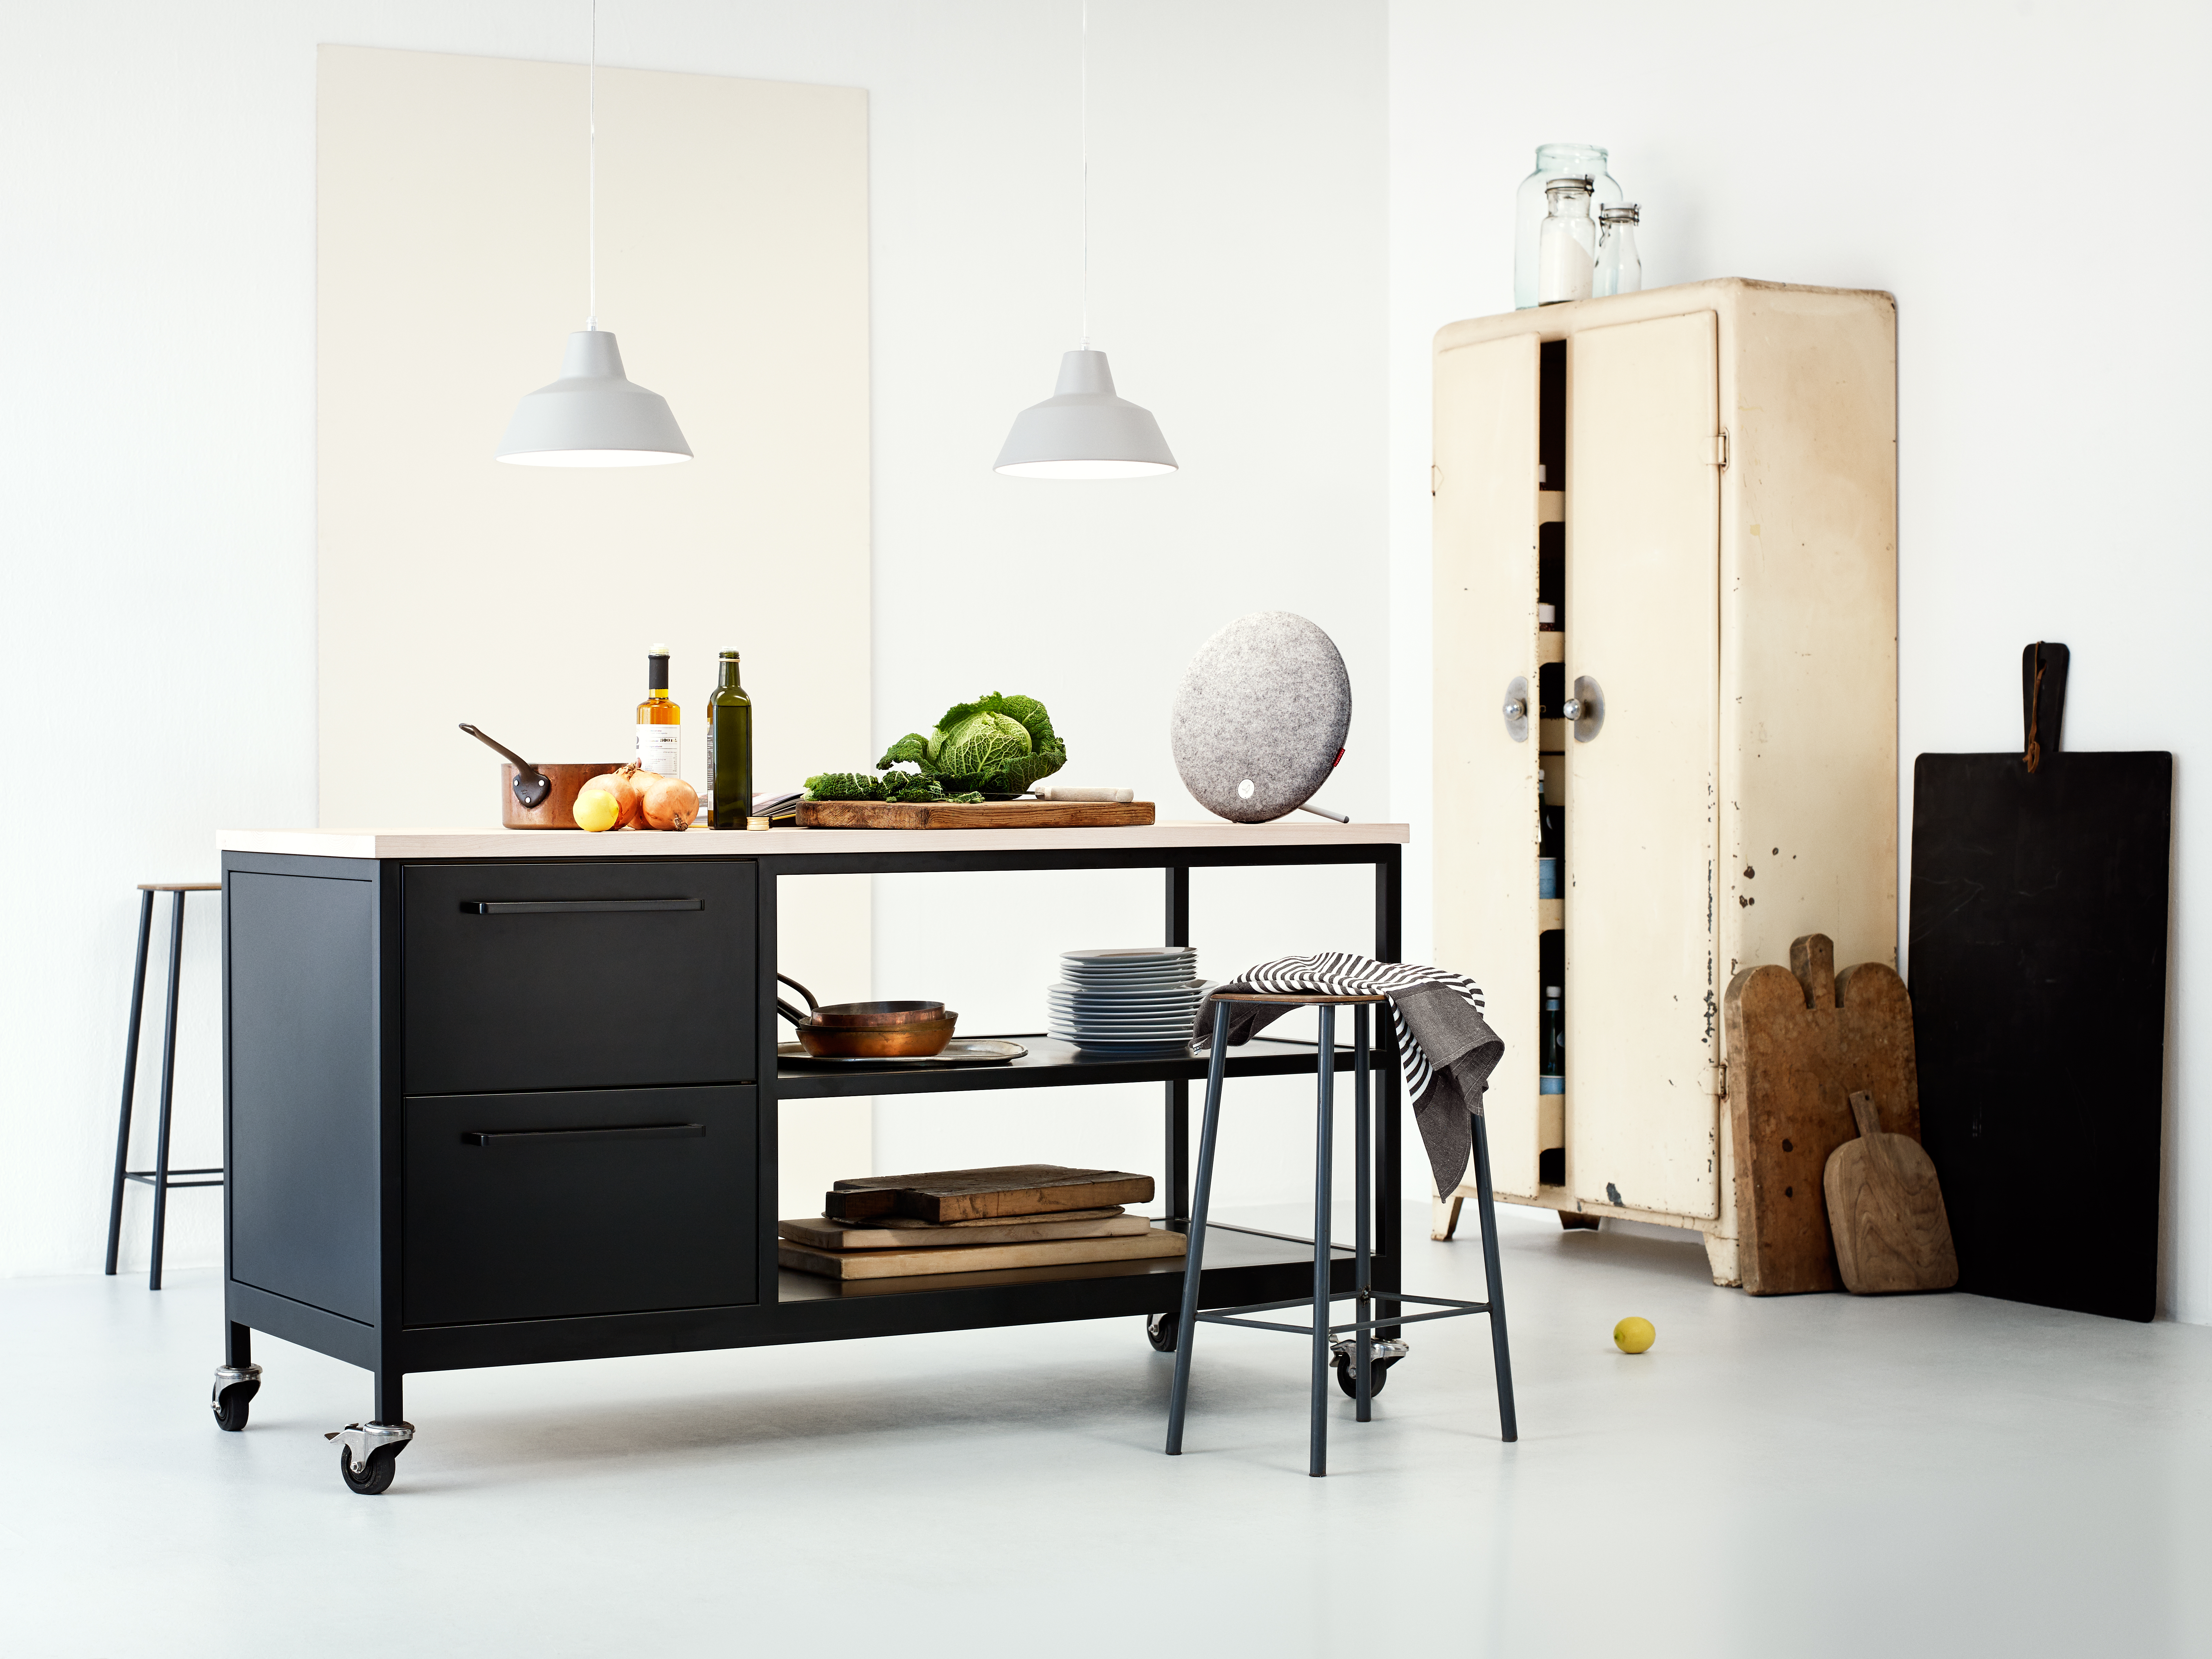 Libratone-Loop-kitchen